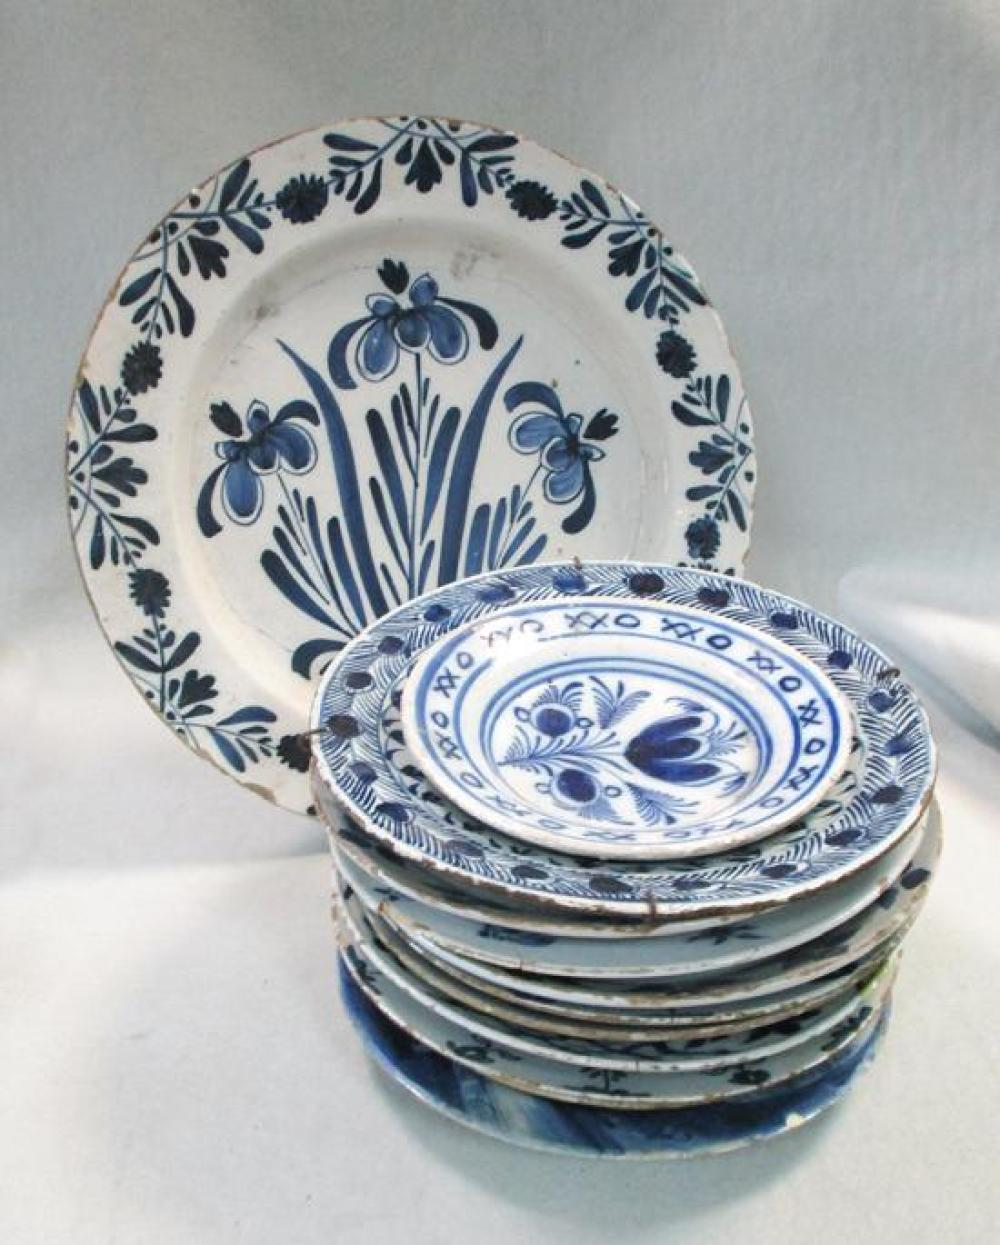 An 18th century Delft blue and white plate,